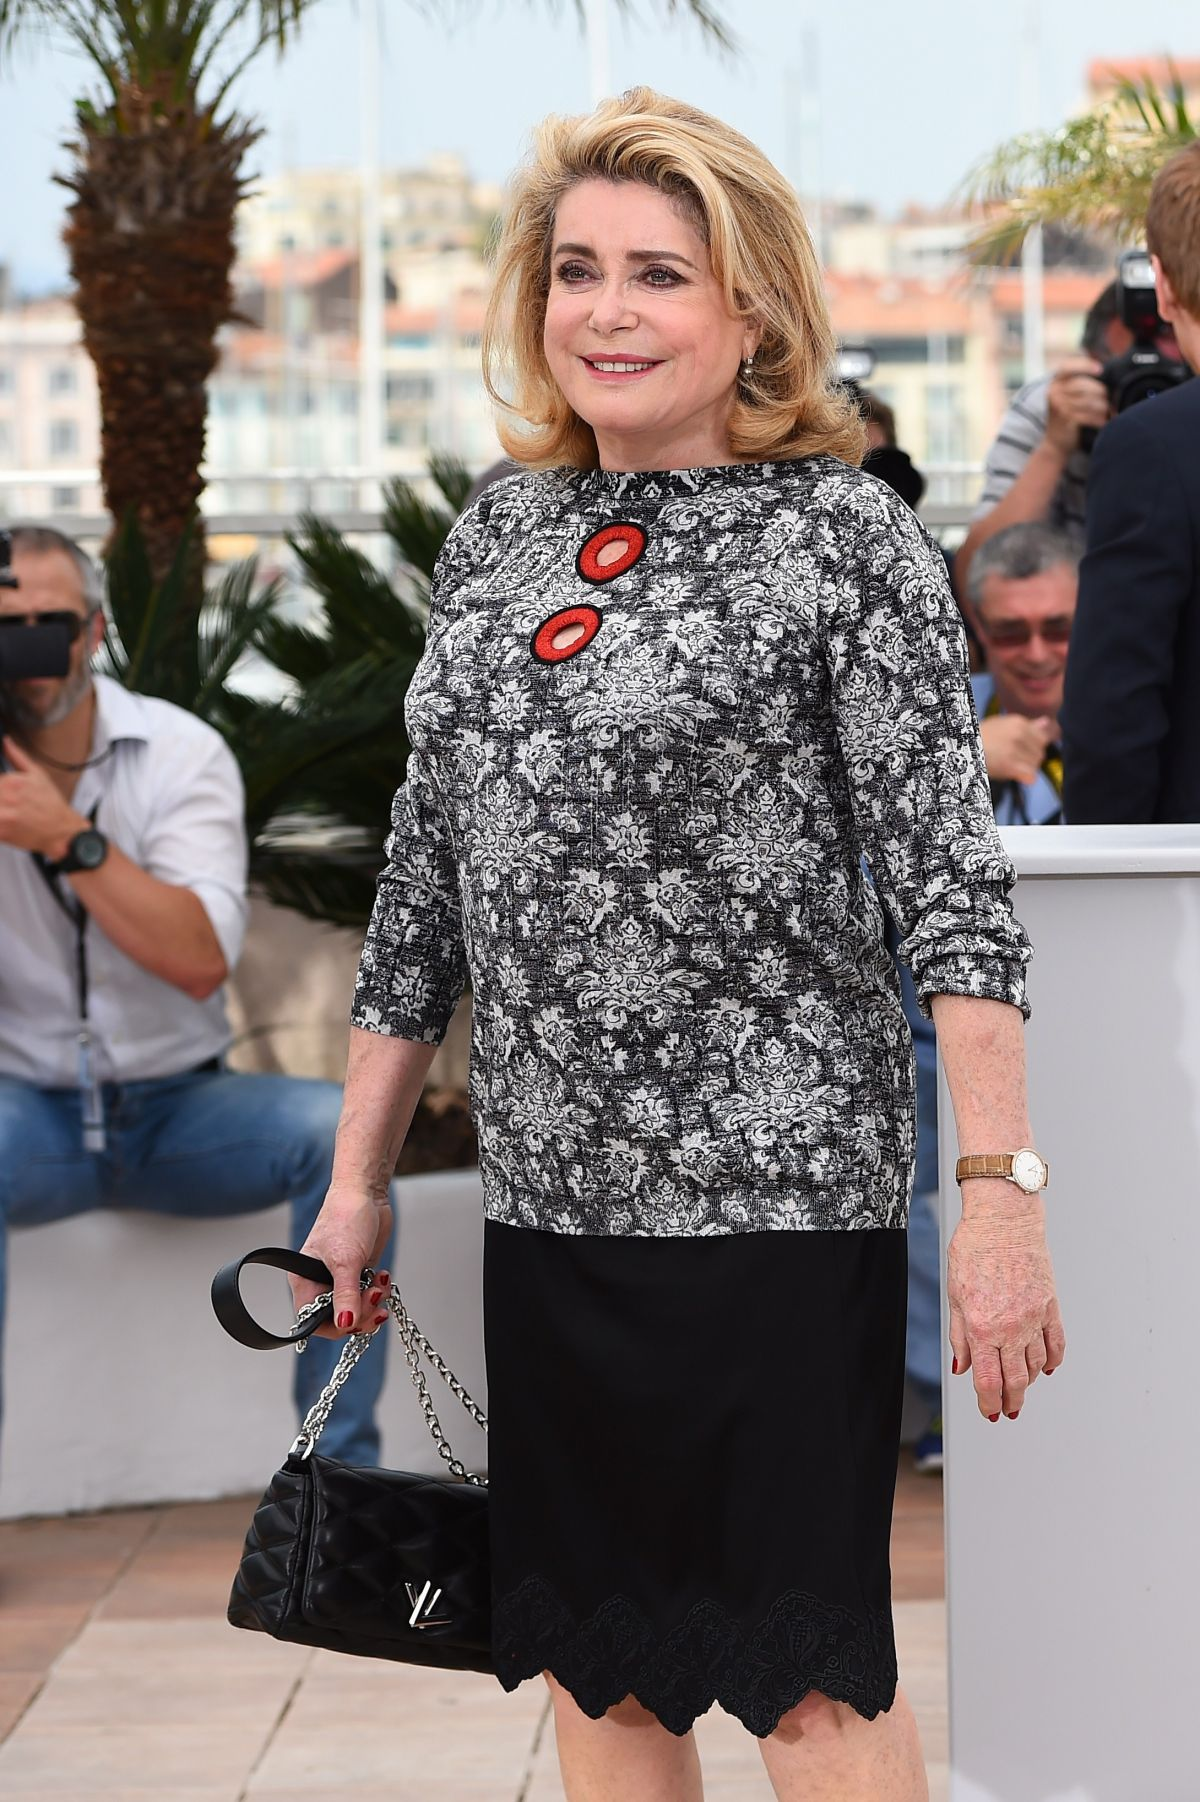 CATHERINE DENEUVE at La Tete Haute Photocall at 2015 Cannes Film Festival